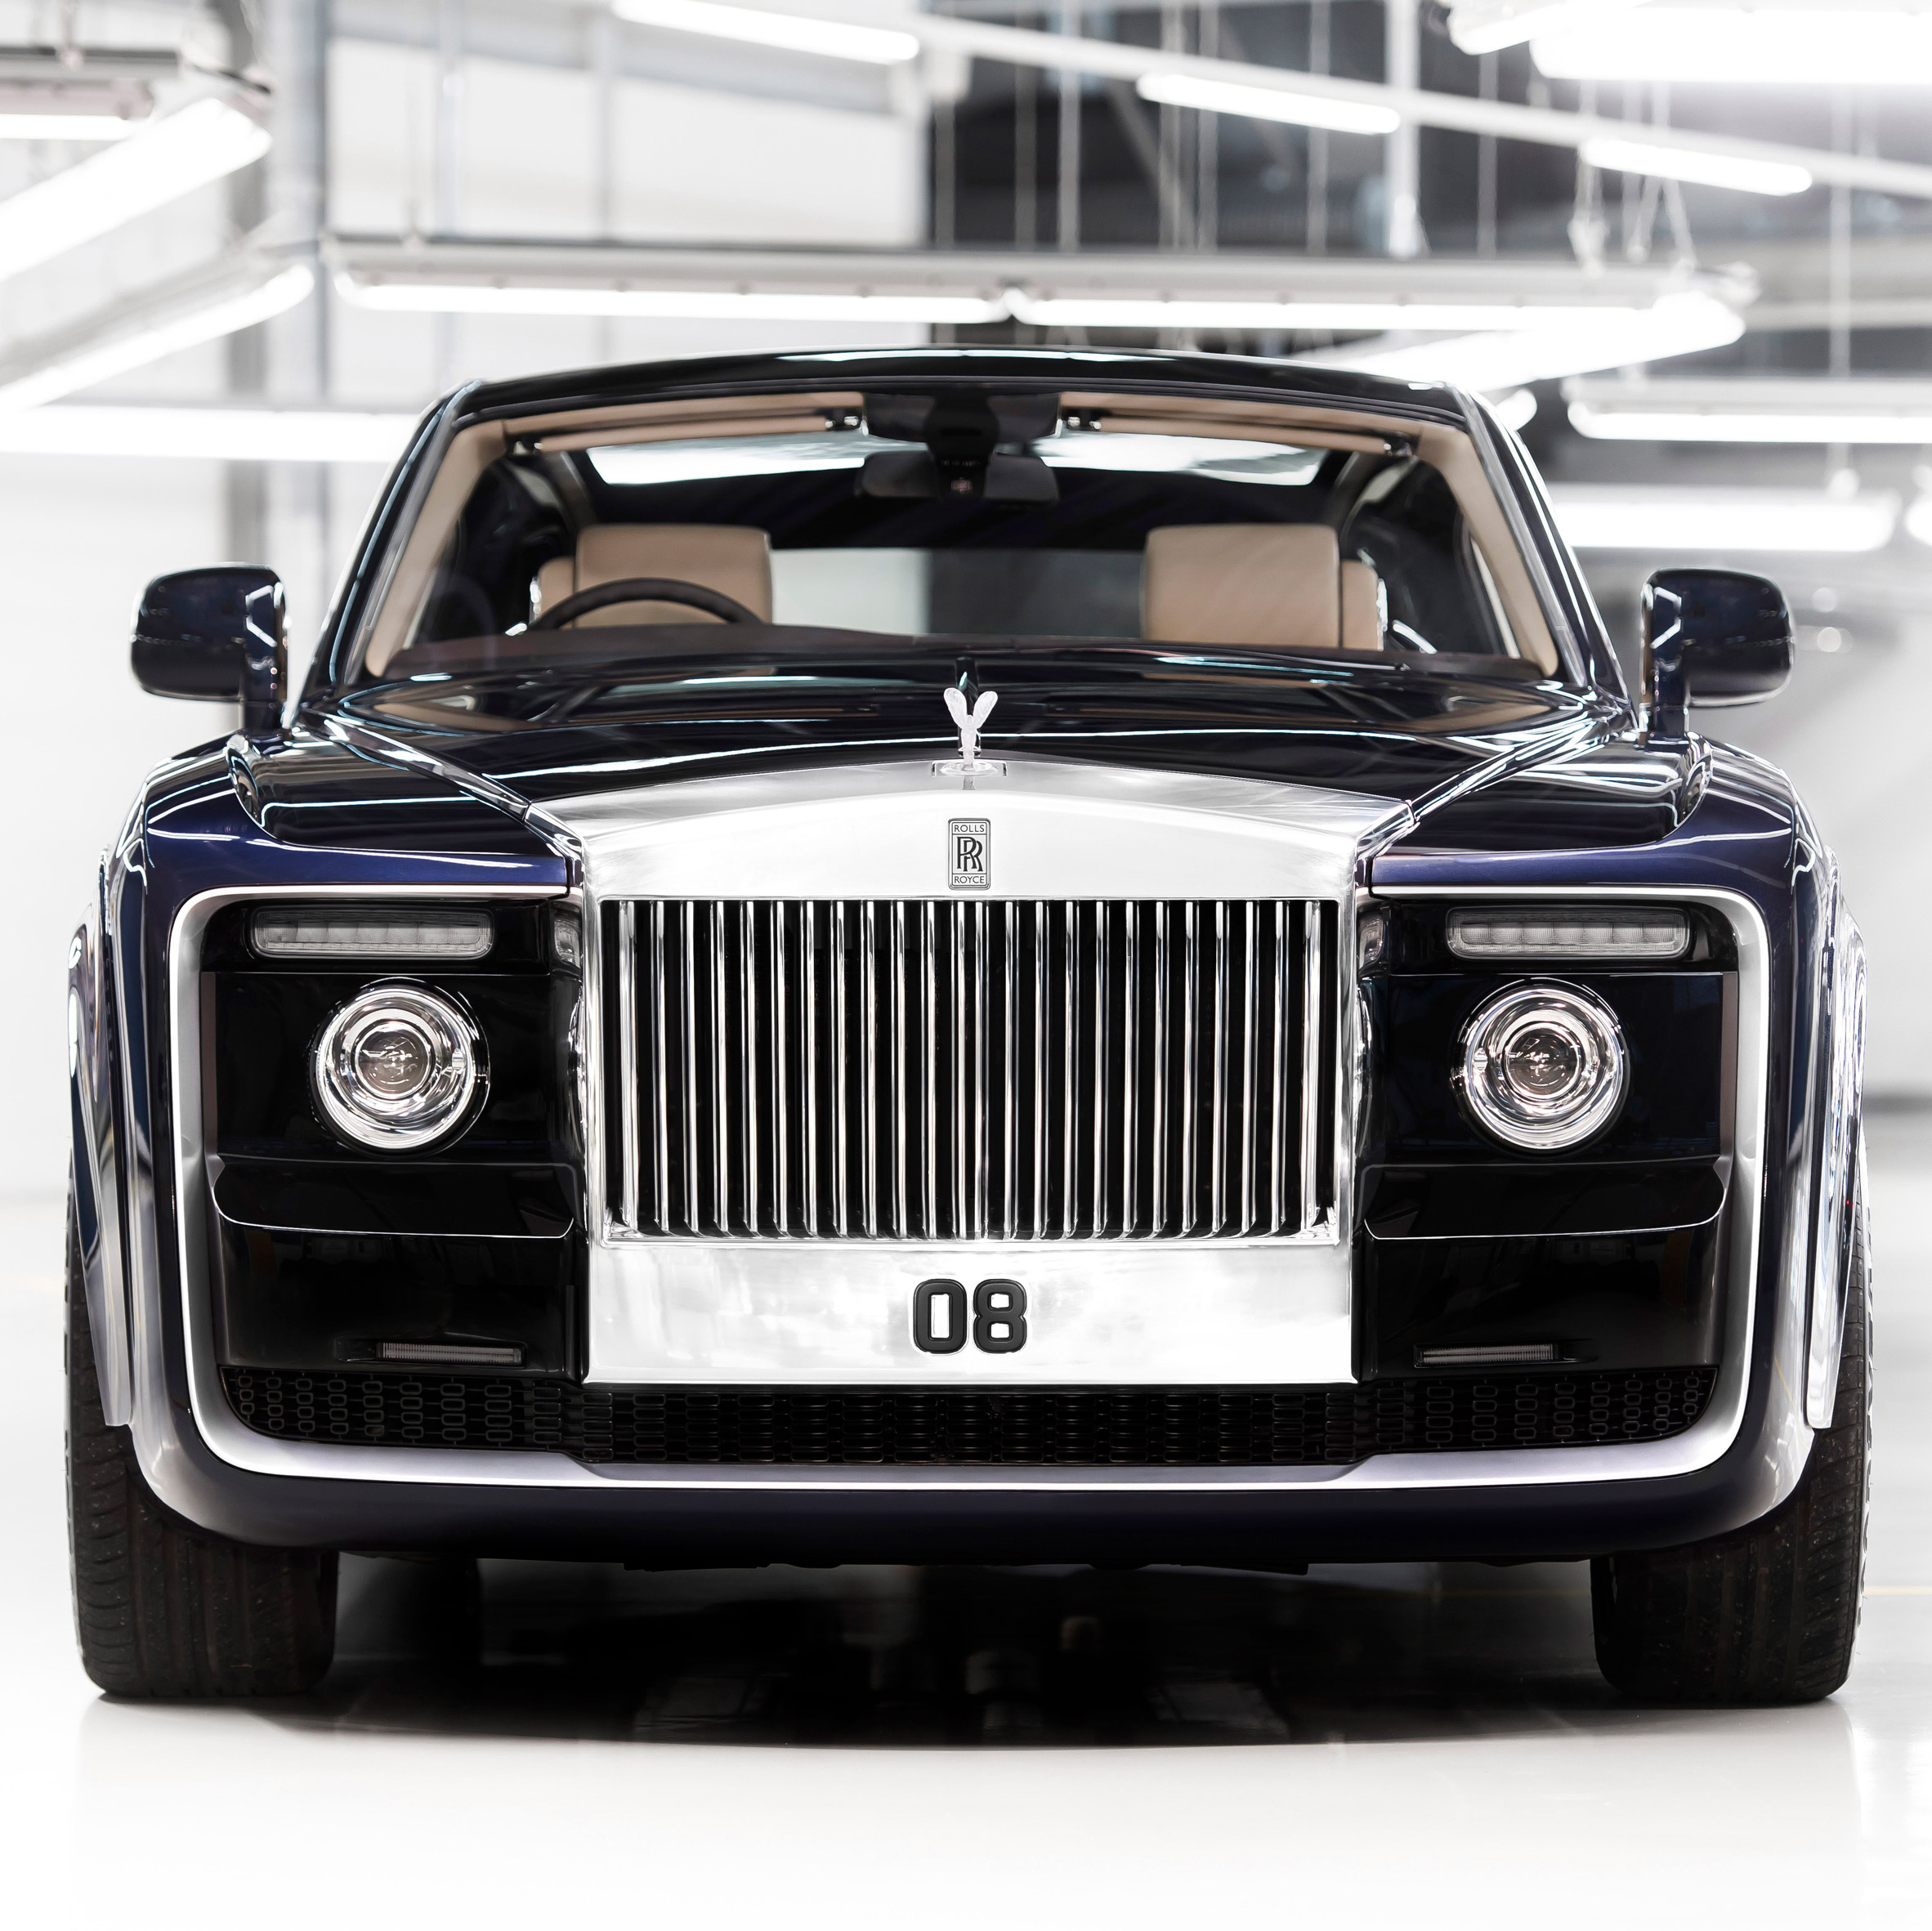 car brand rolls royce has created a one off motorcar based. Black Bedroom Furniture Sets. Home Design Ideas